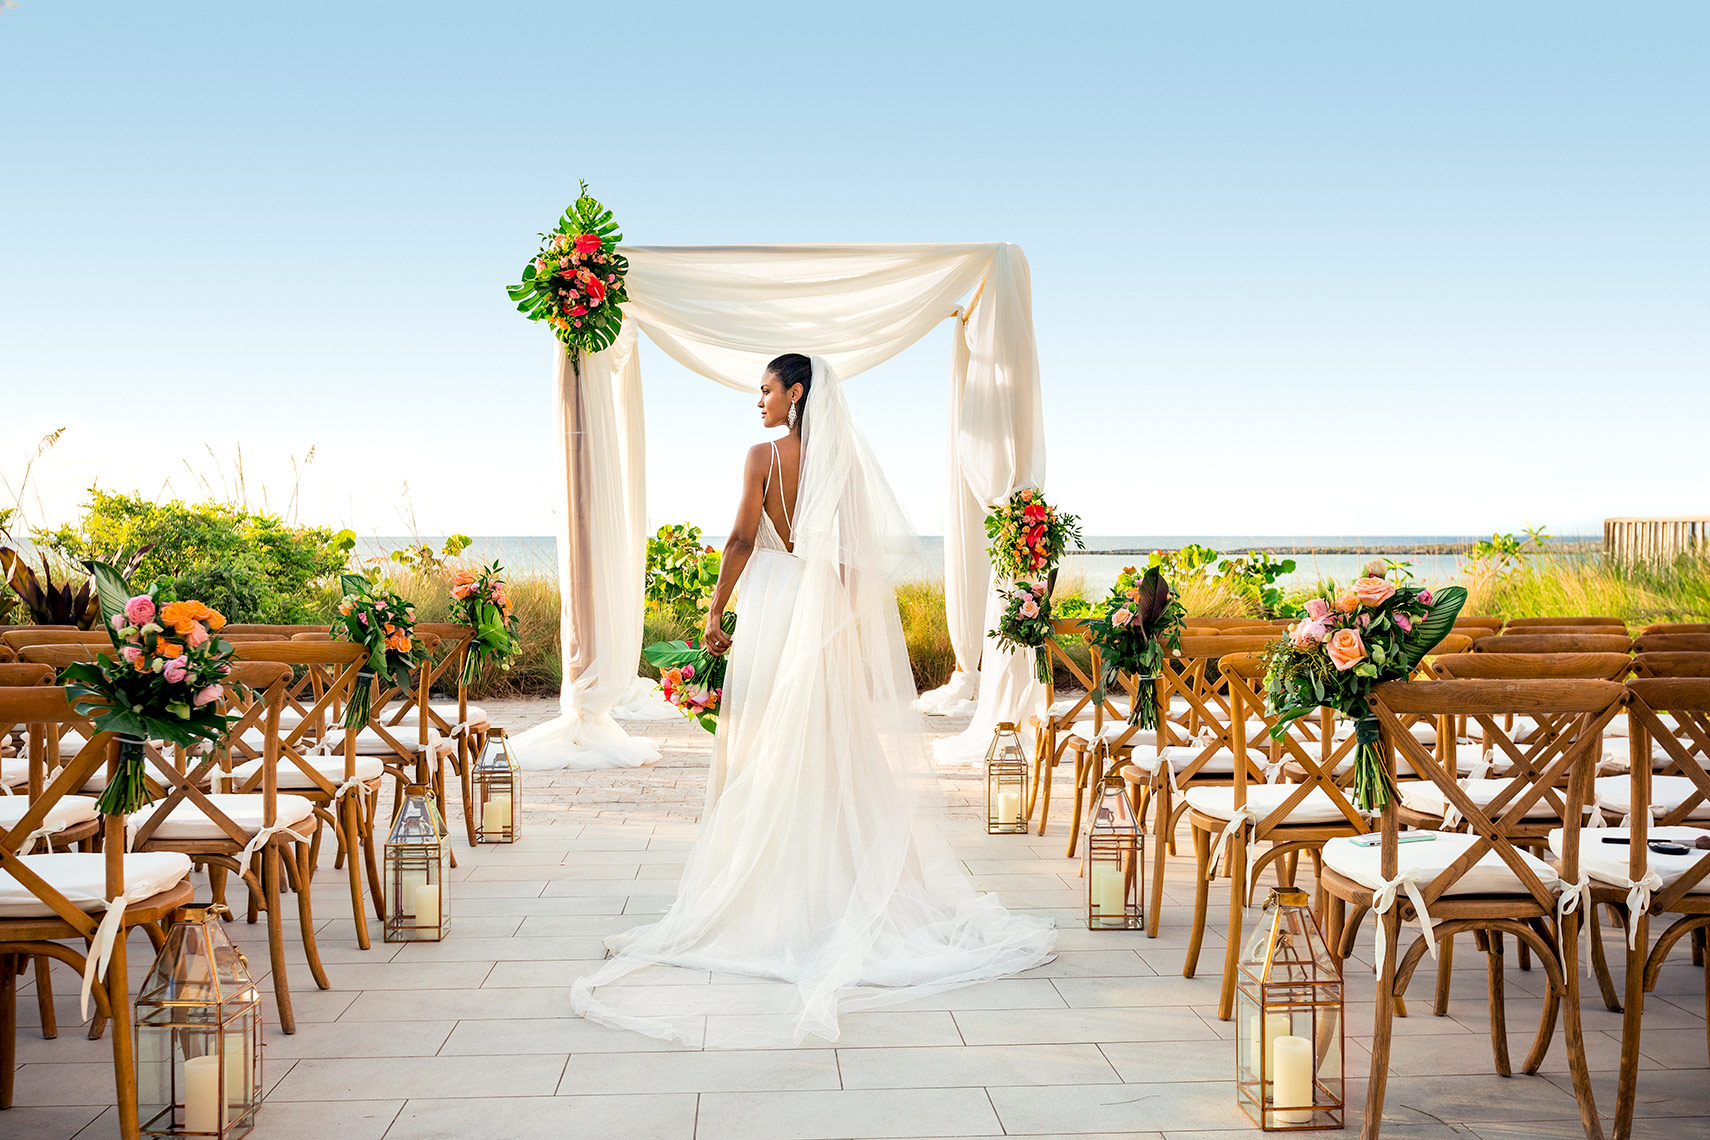 Miami Beach Wedding Photography Advertising: Bride walking down the aisle.